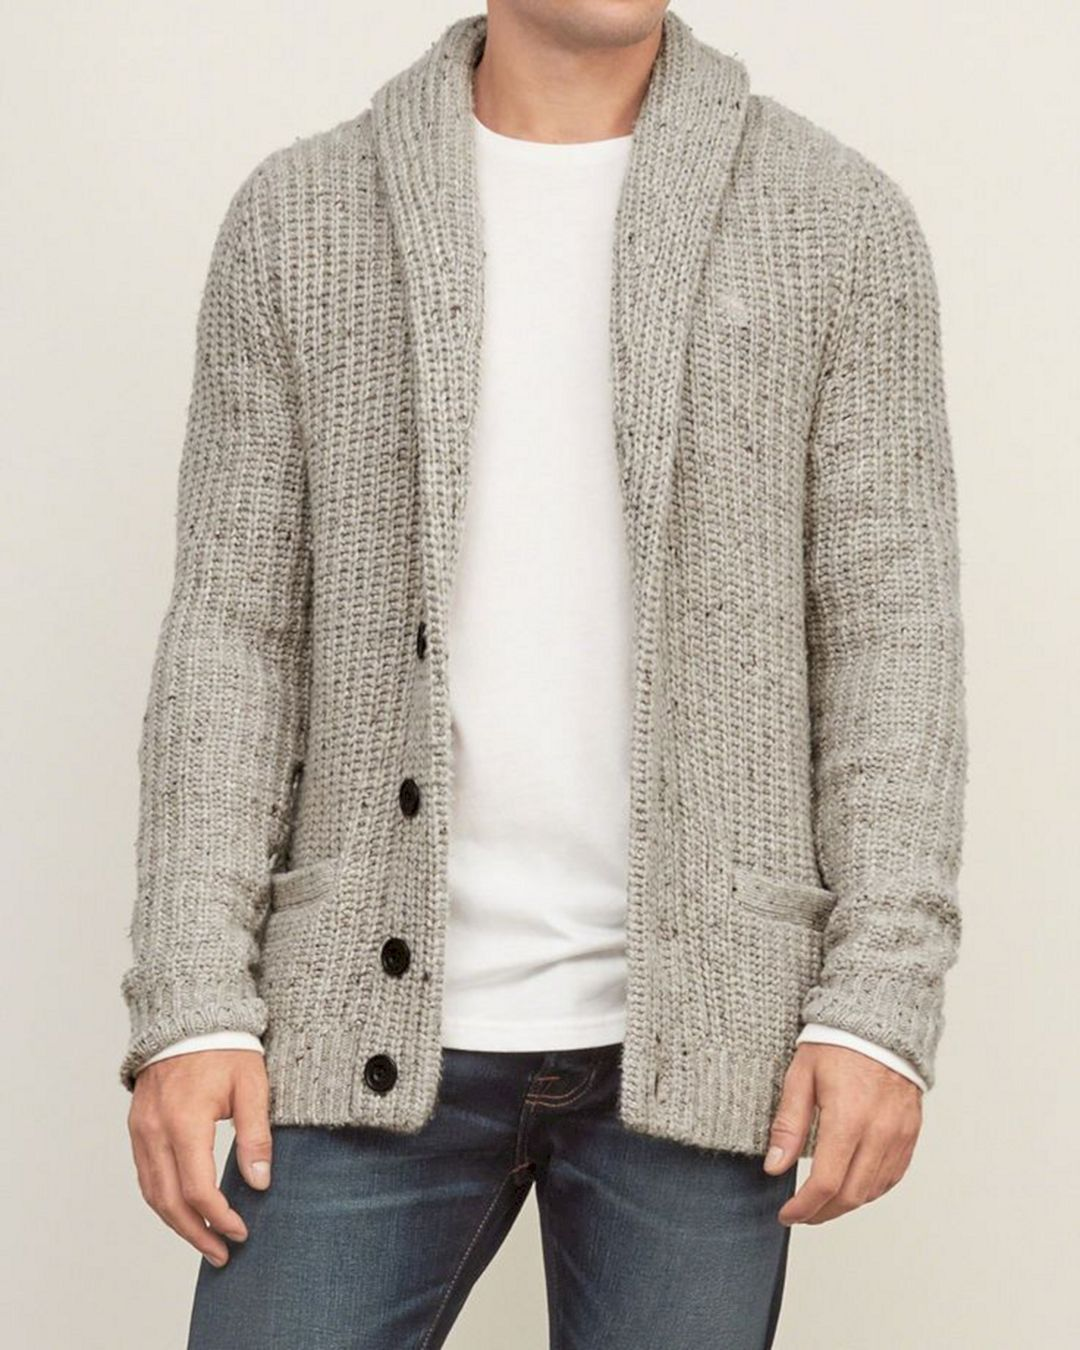 18 Incredible Cardigan Fashion For Cool Men Style Ideas #mensfashion